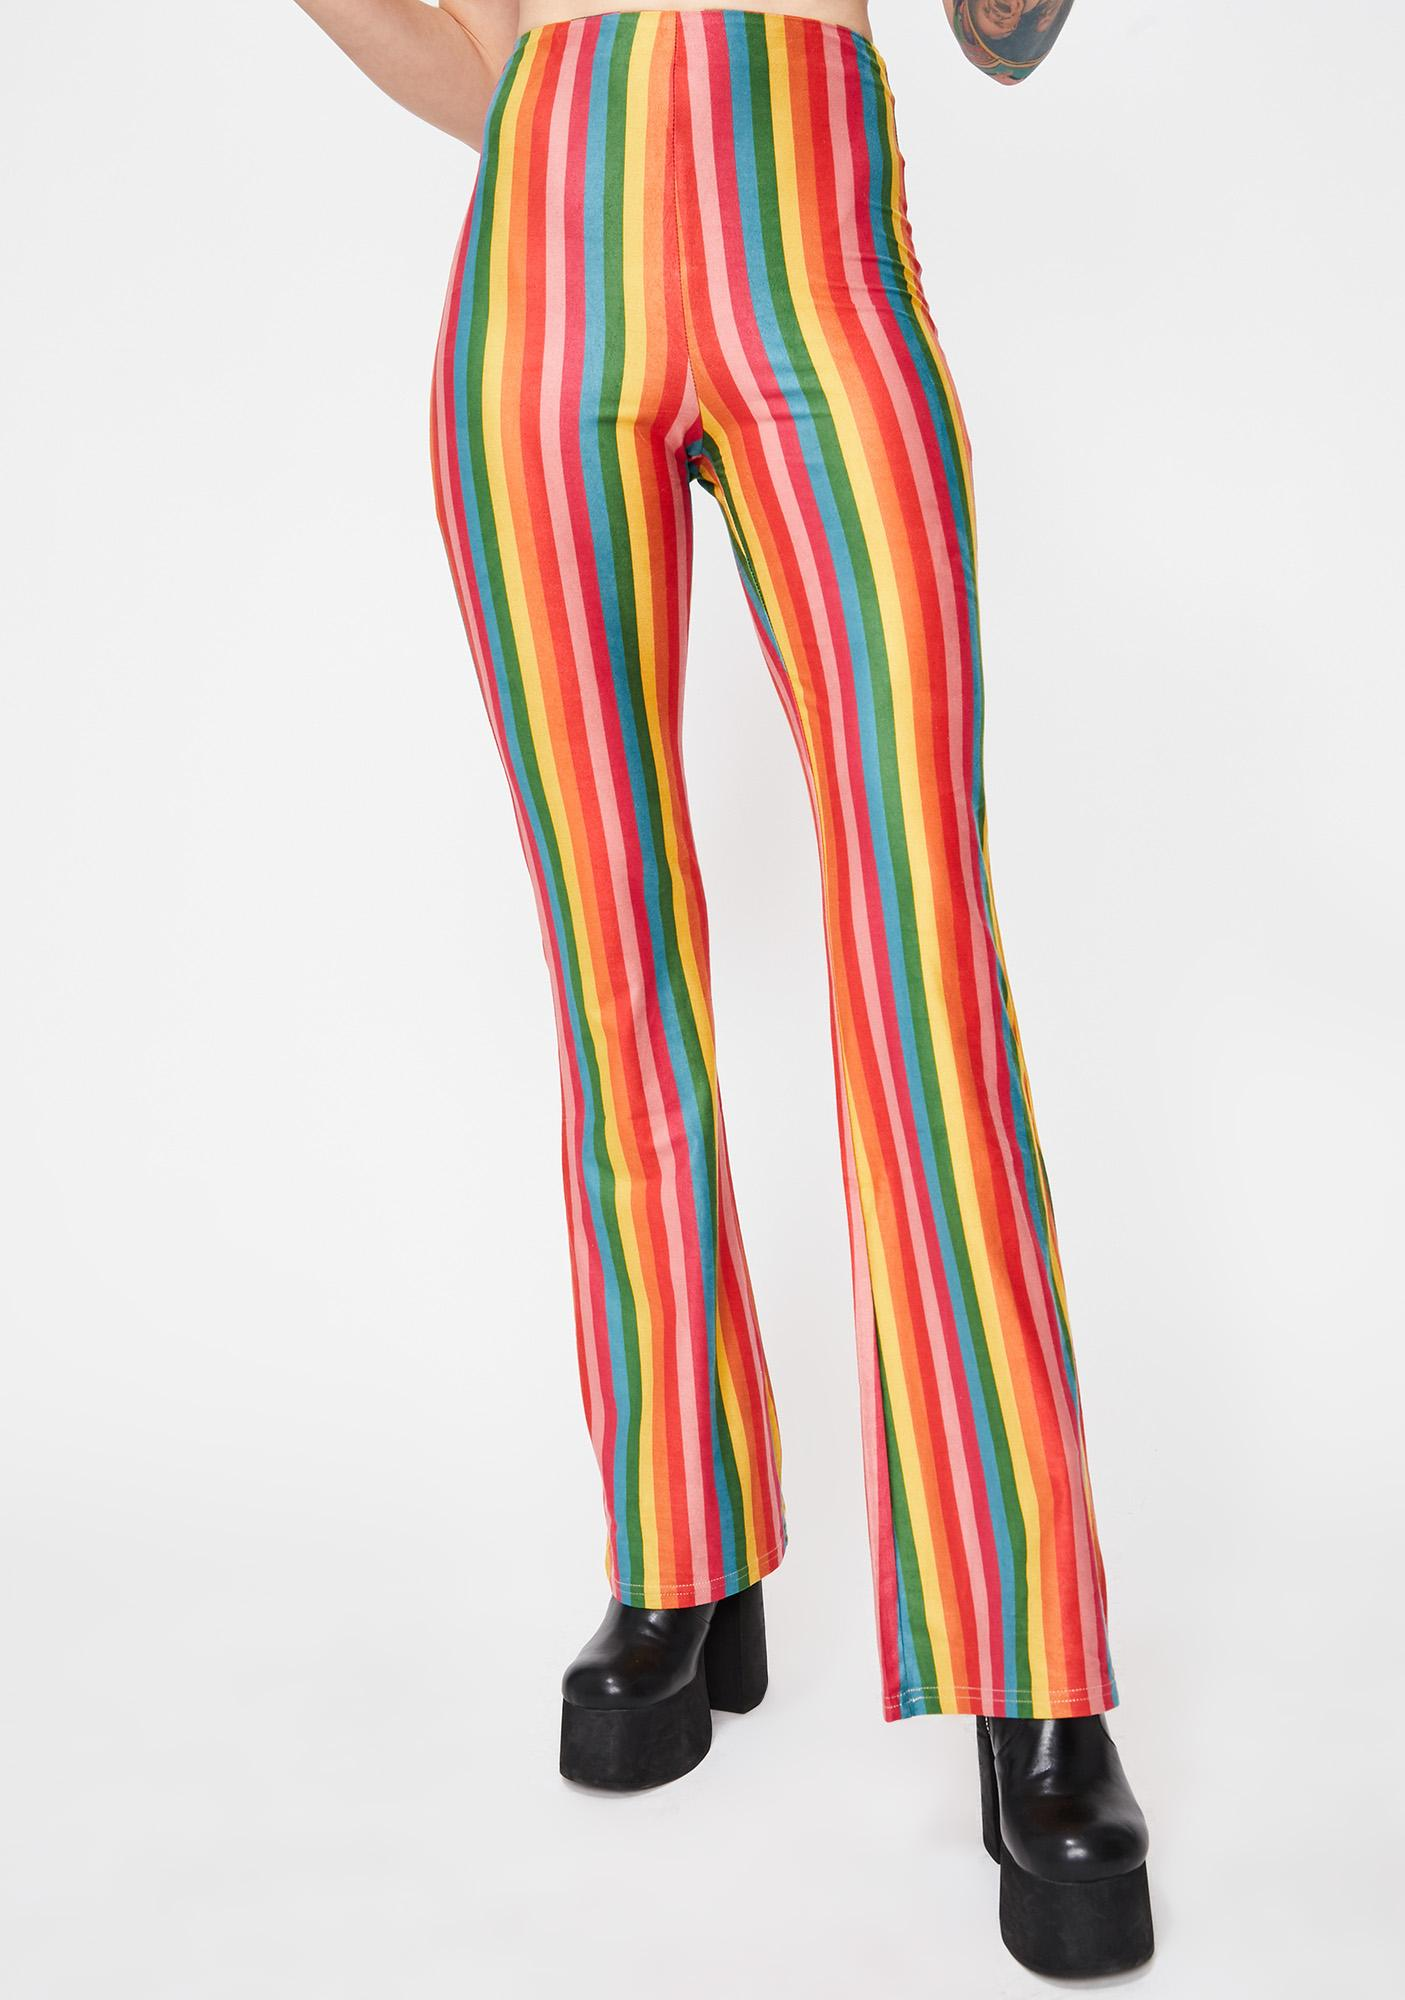 Kush Down The Line Striped Pants